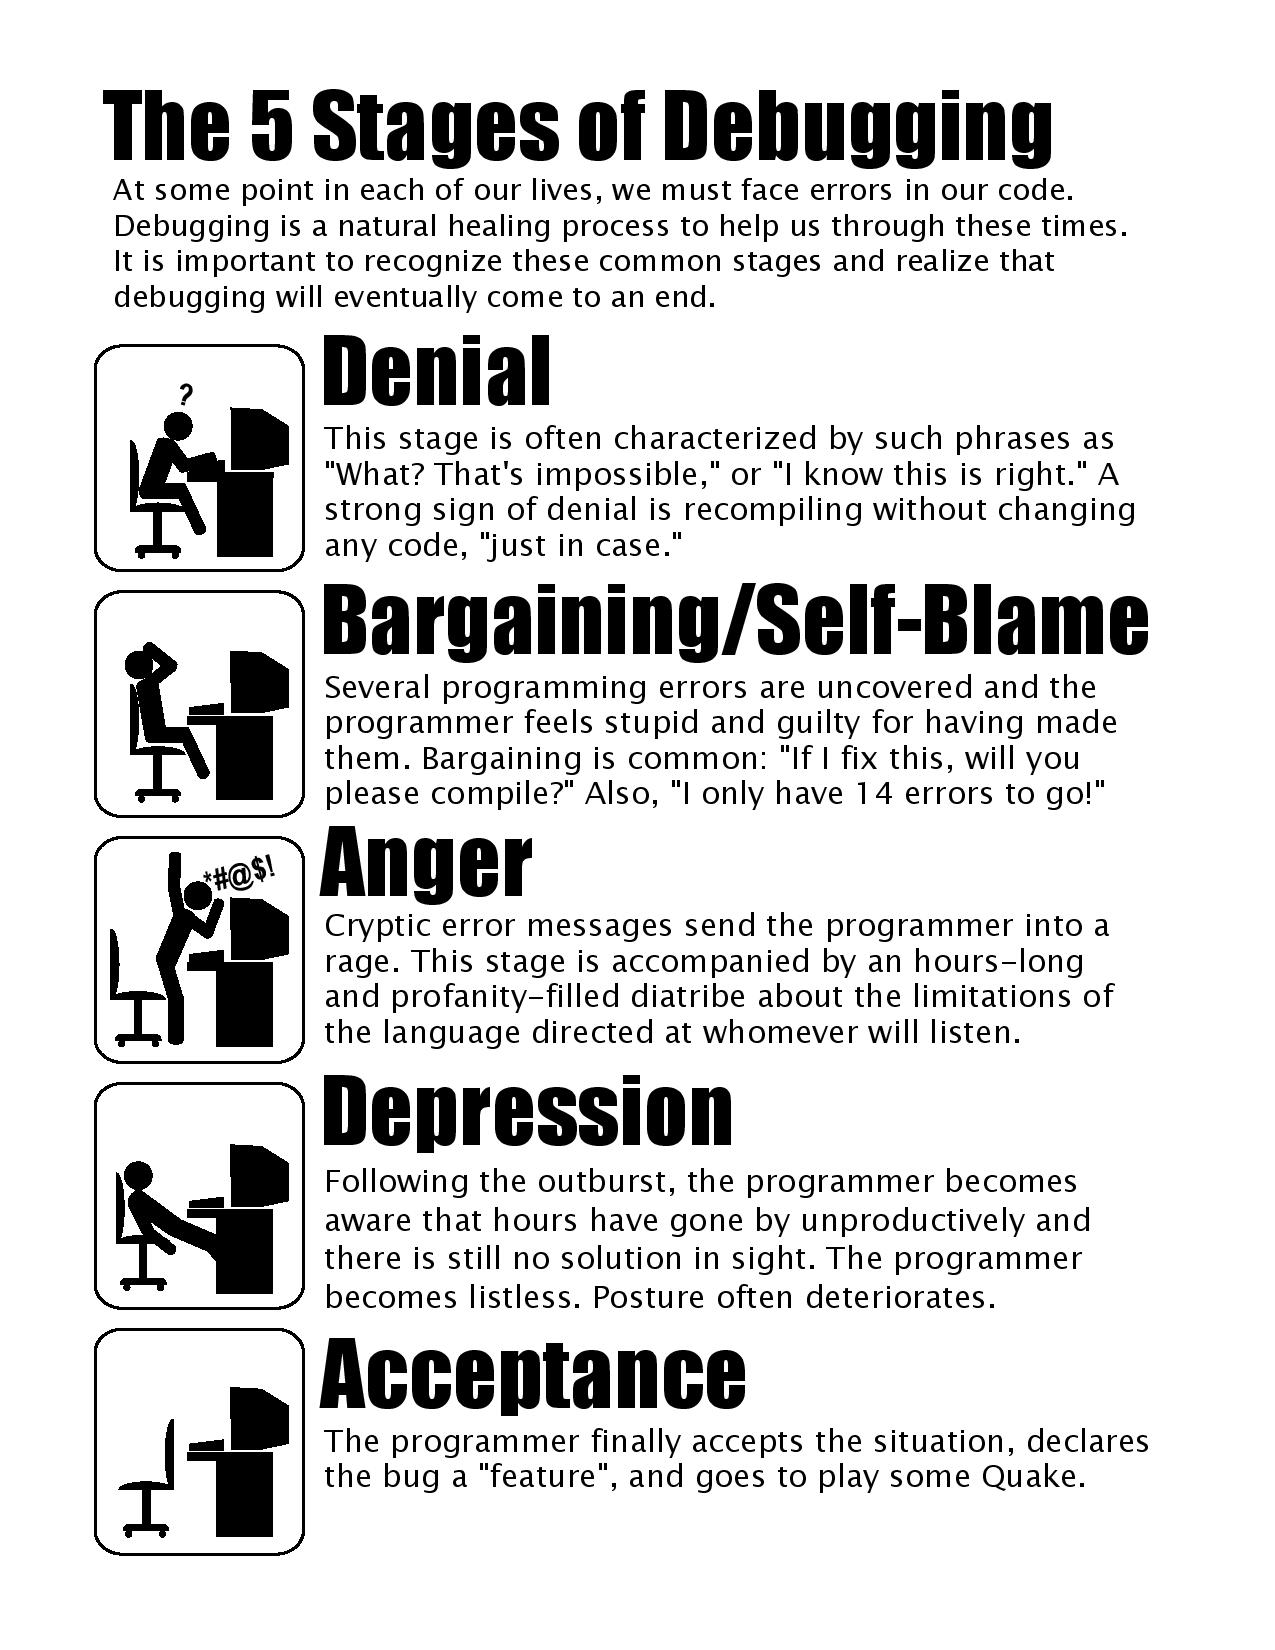 5 Stages of Debugging